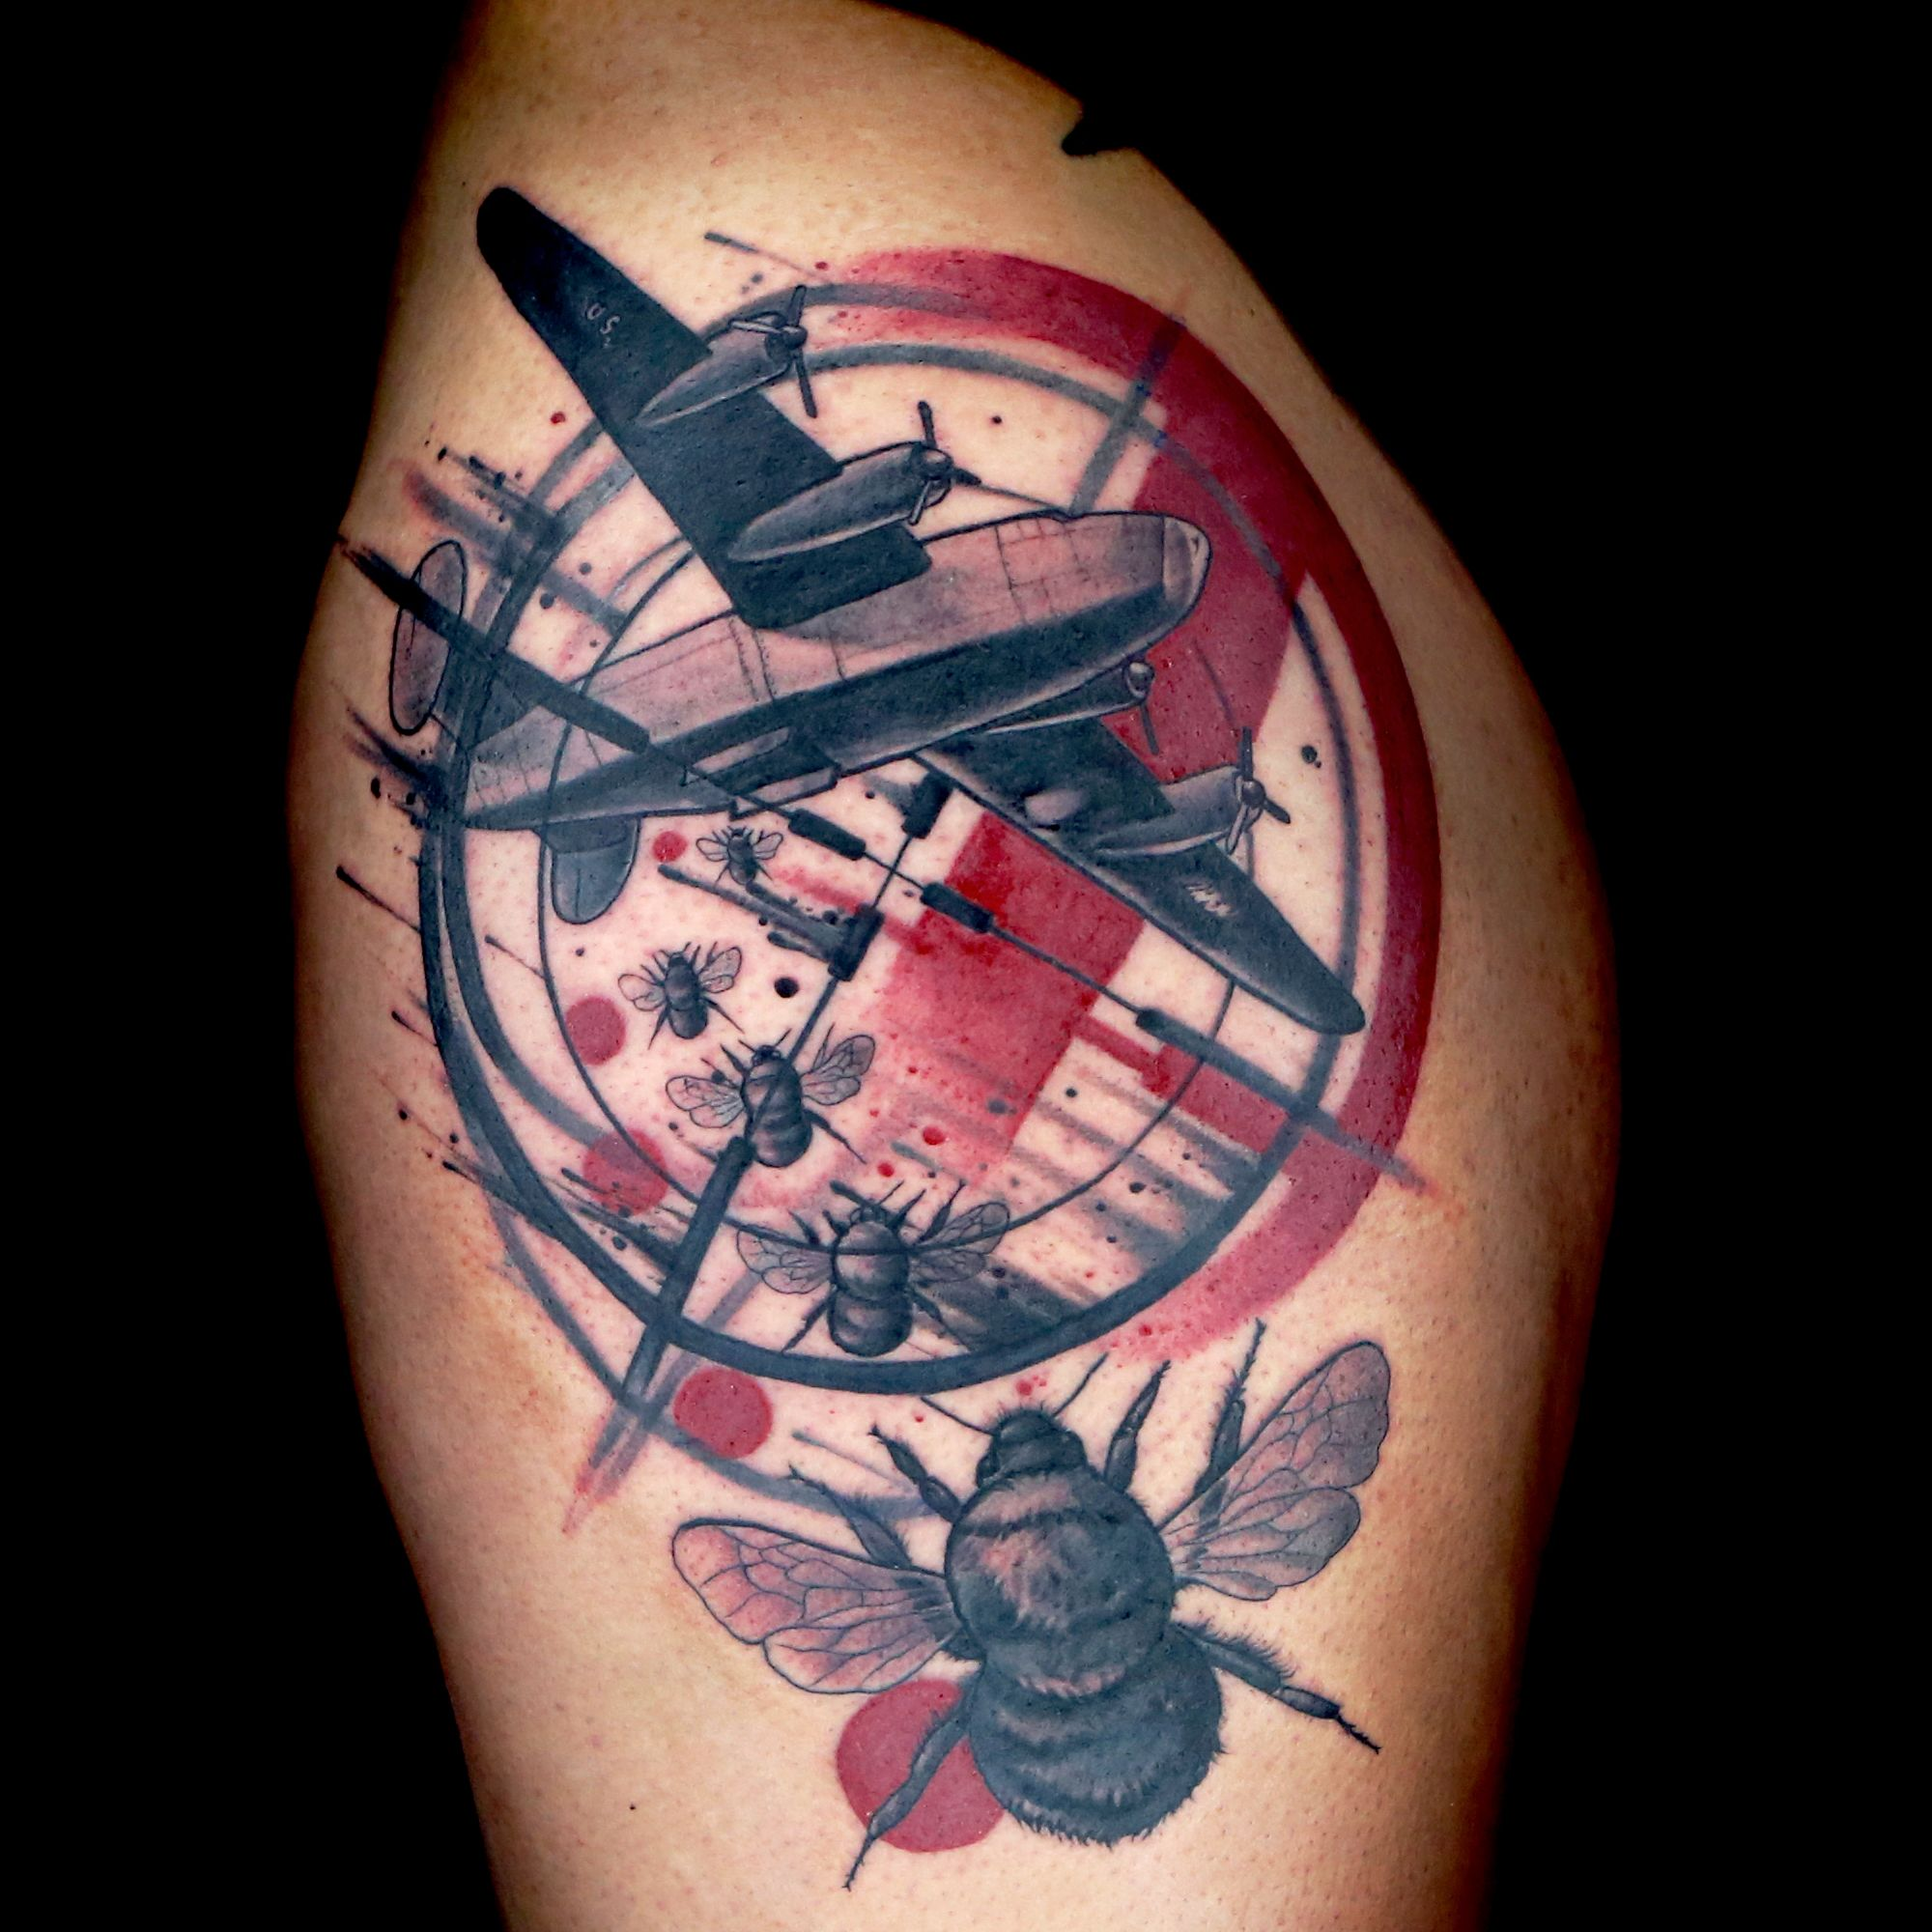 Trash Polka Tattoo: Check Out This High Res Photo Of Craig Foster's Tattoo